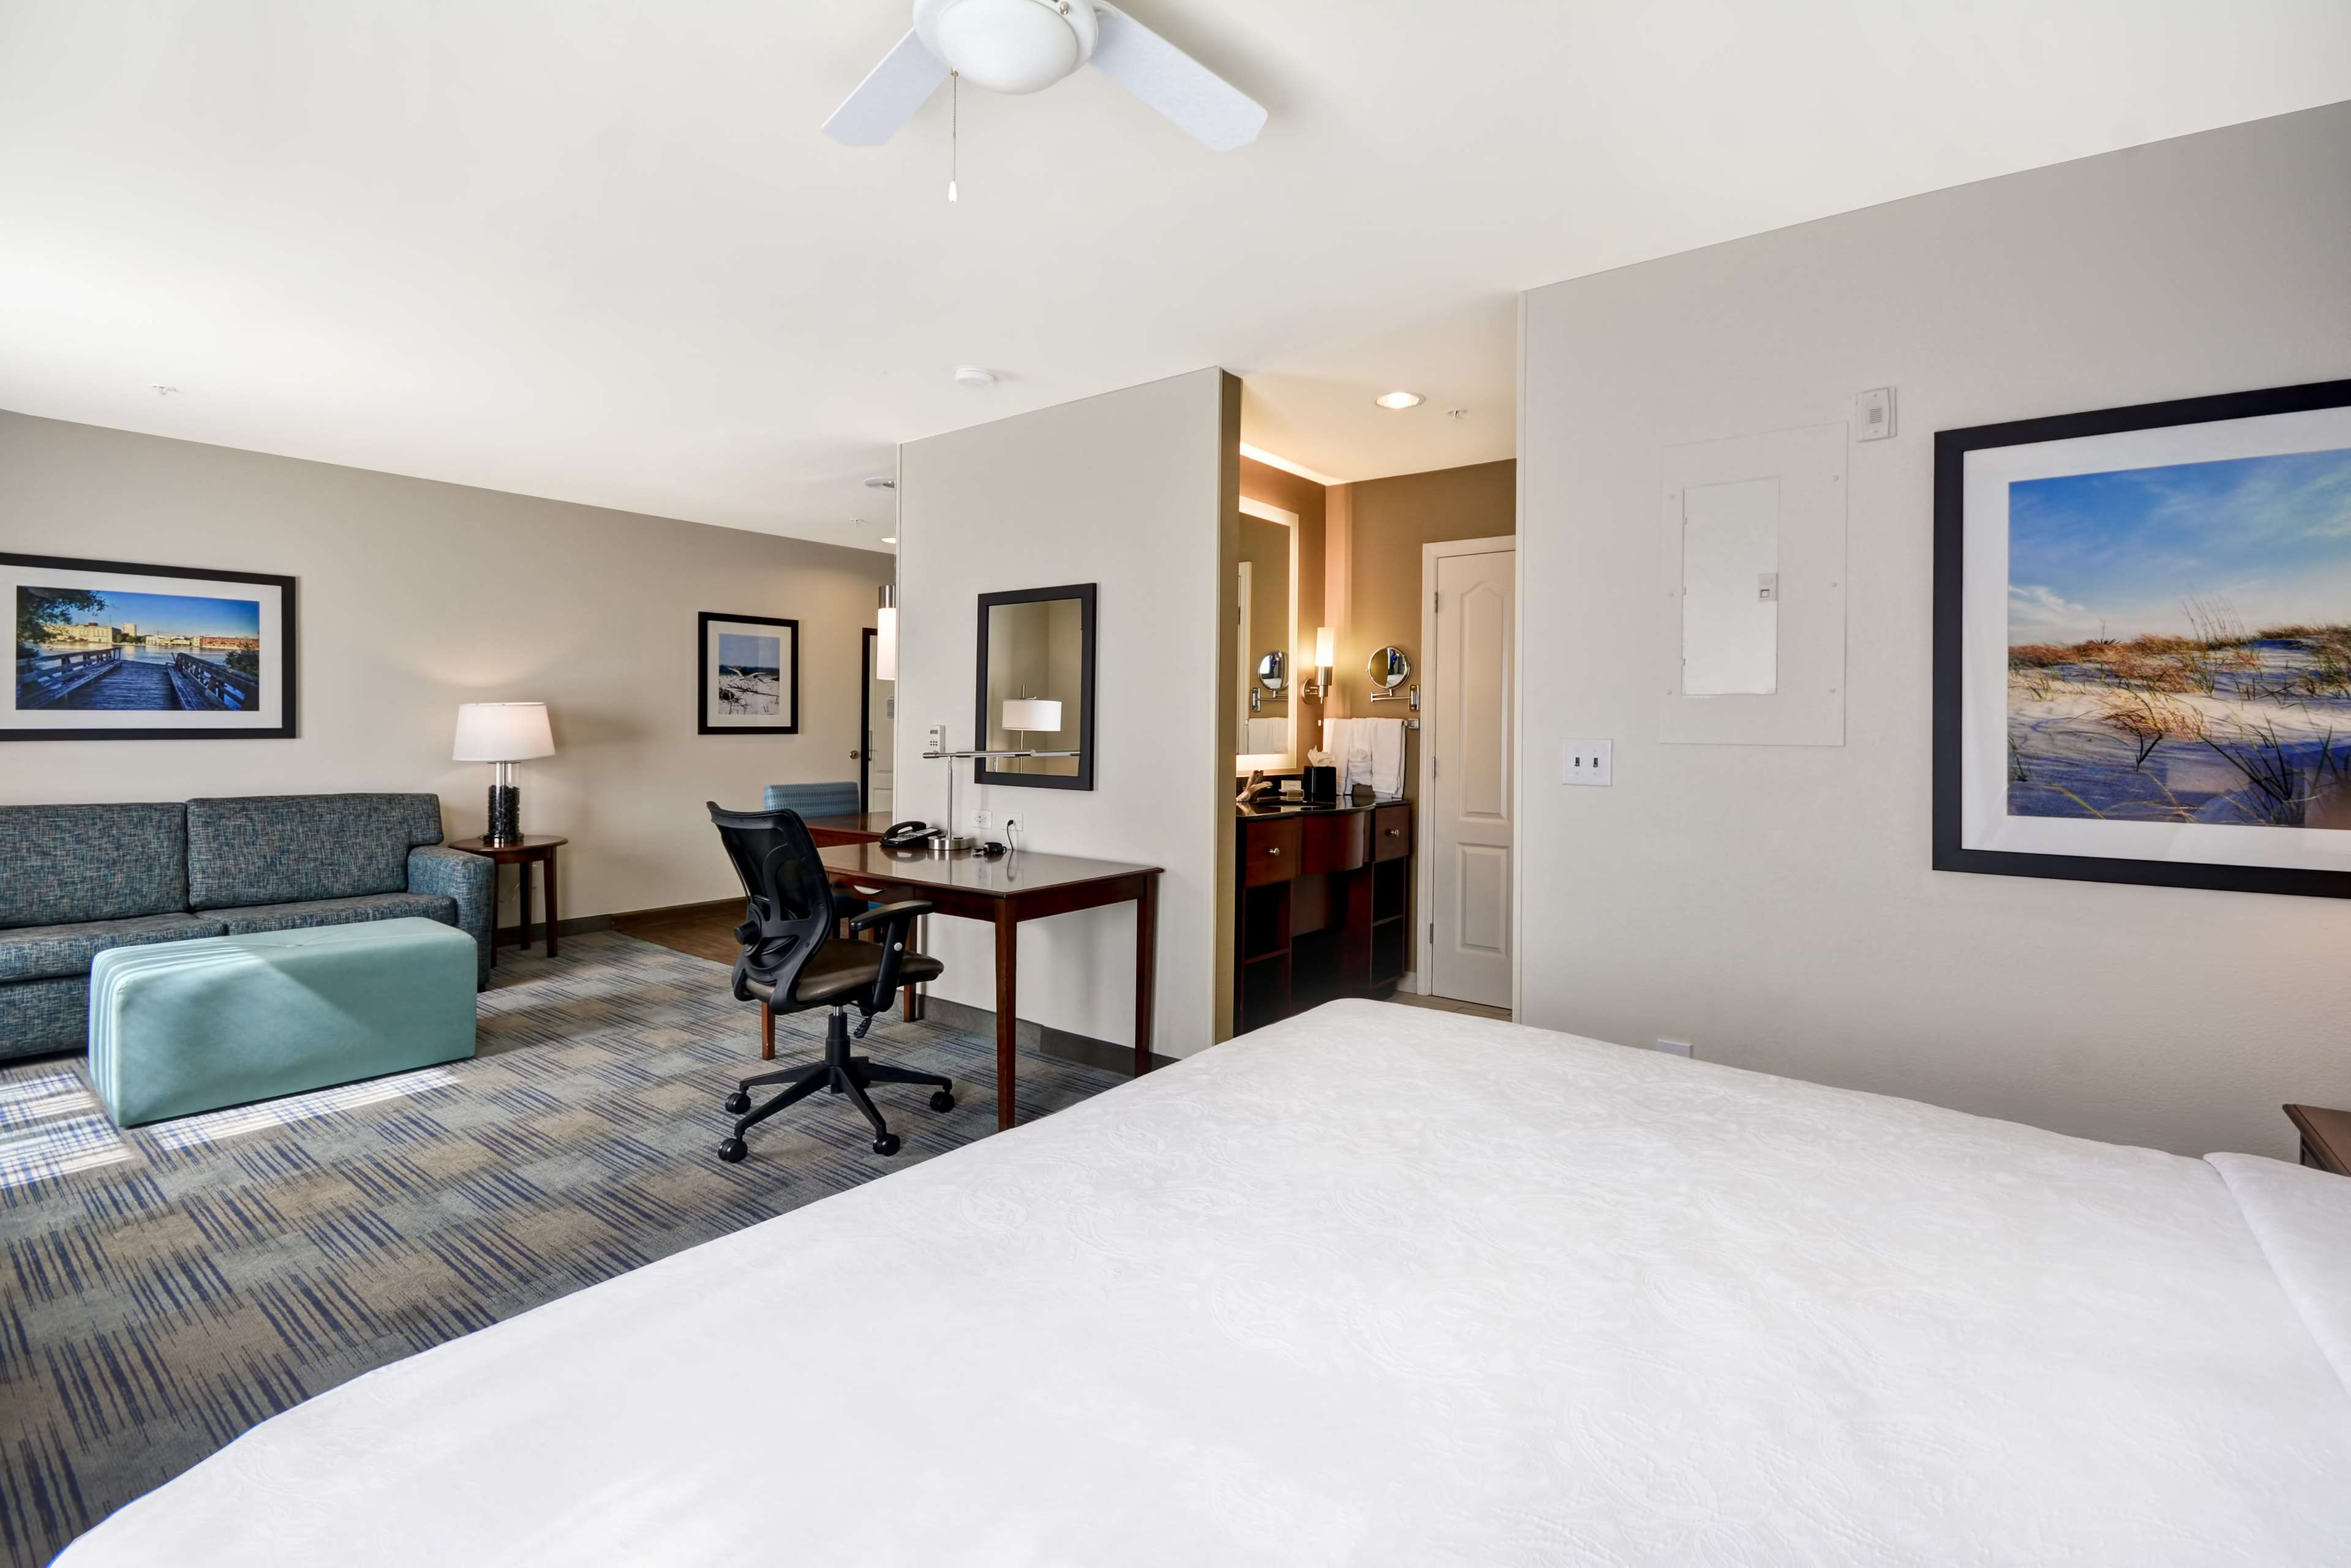 Homewood Suites by Hilton Wilmington/Mayfaire, NC image 23